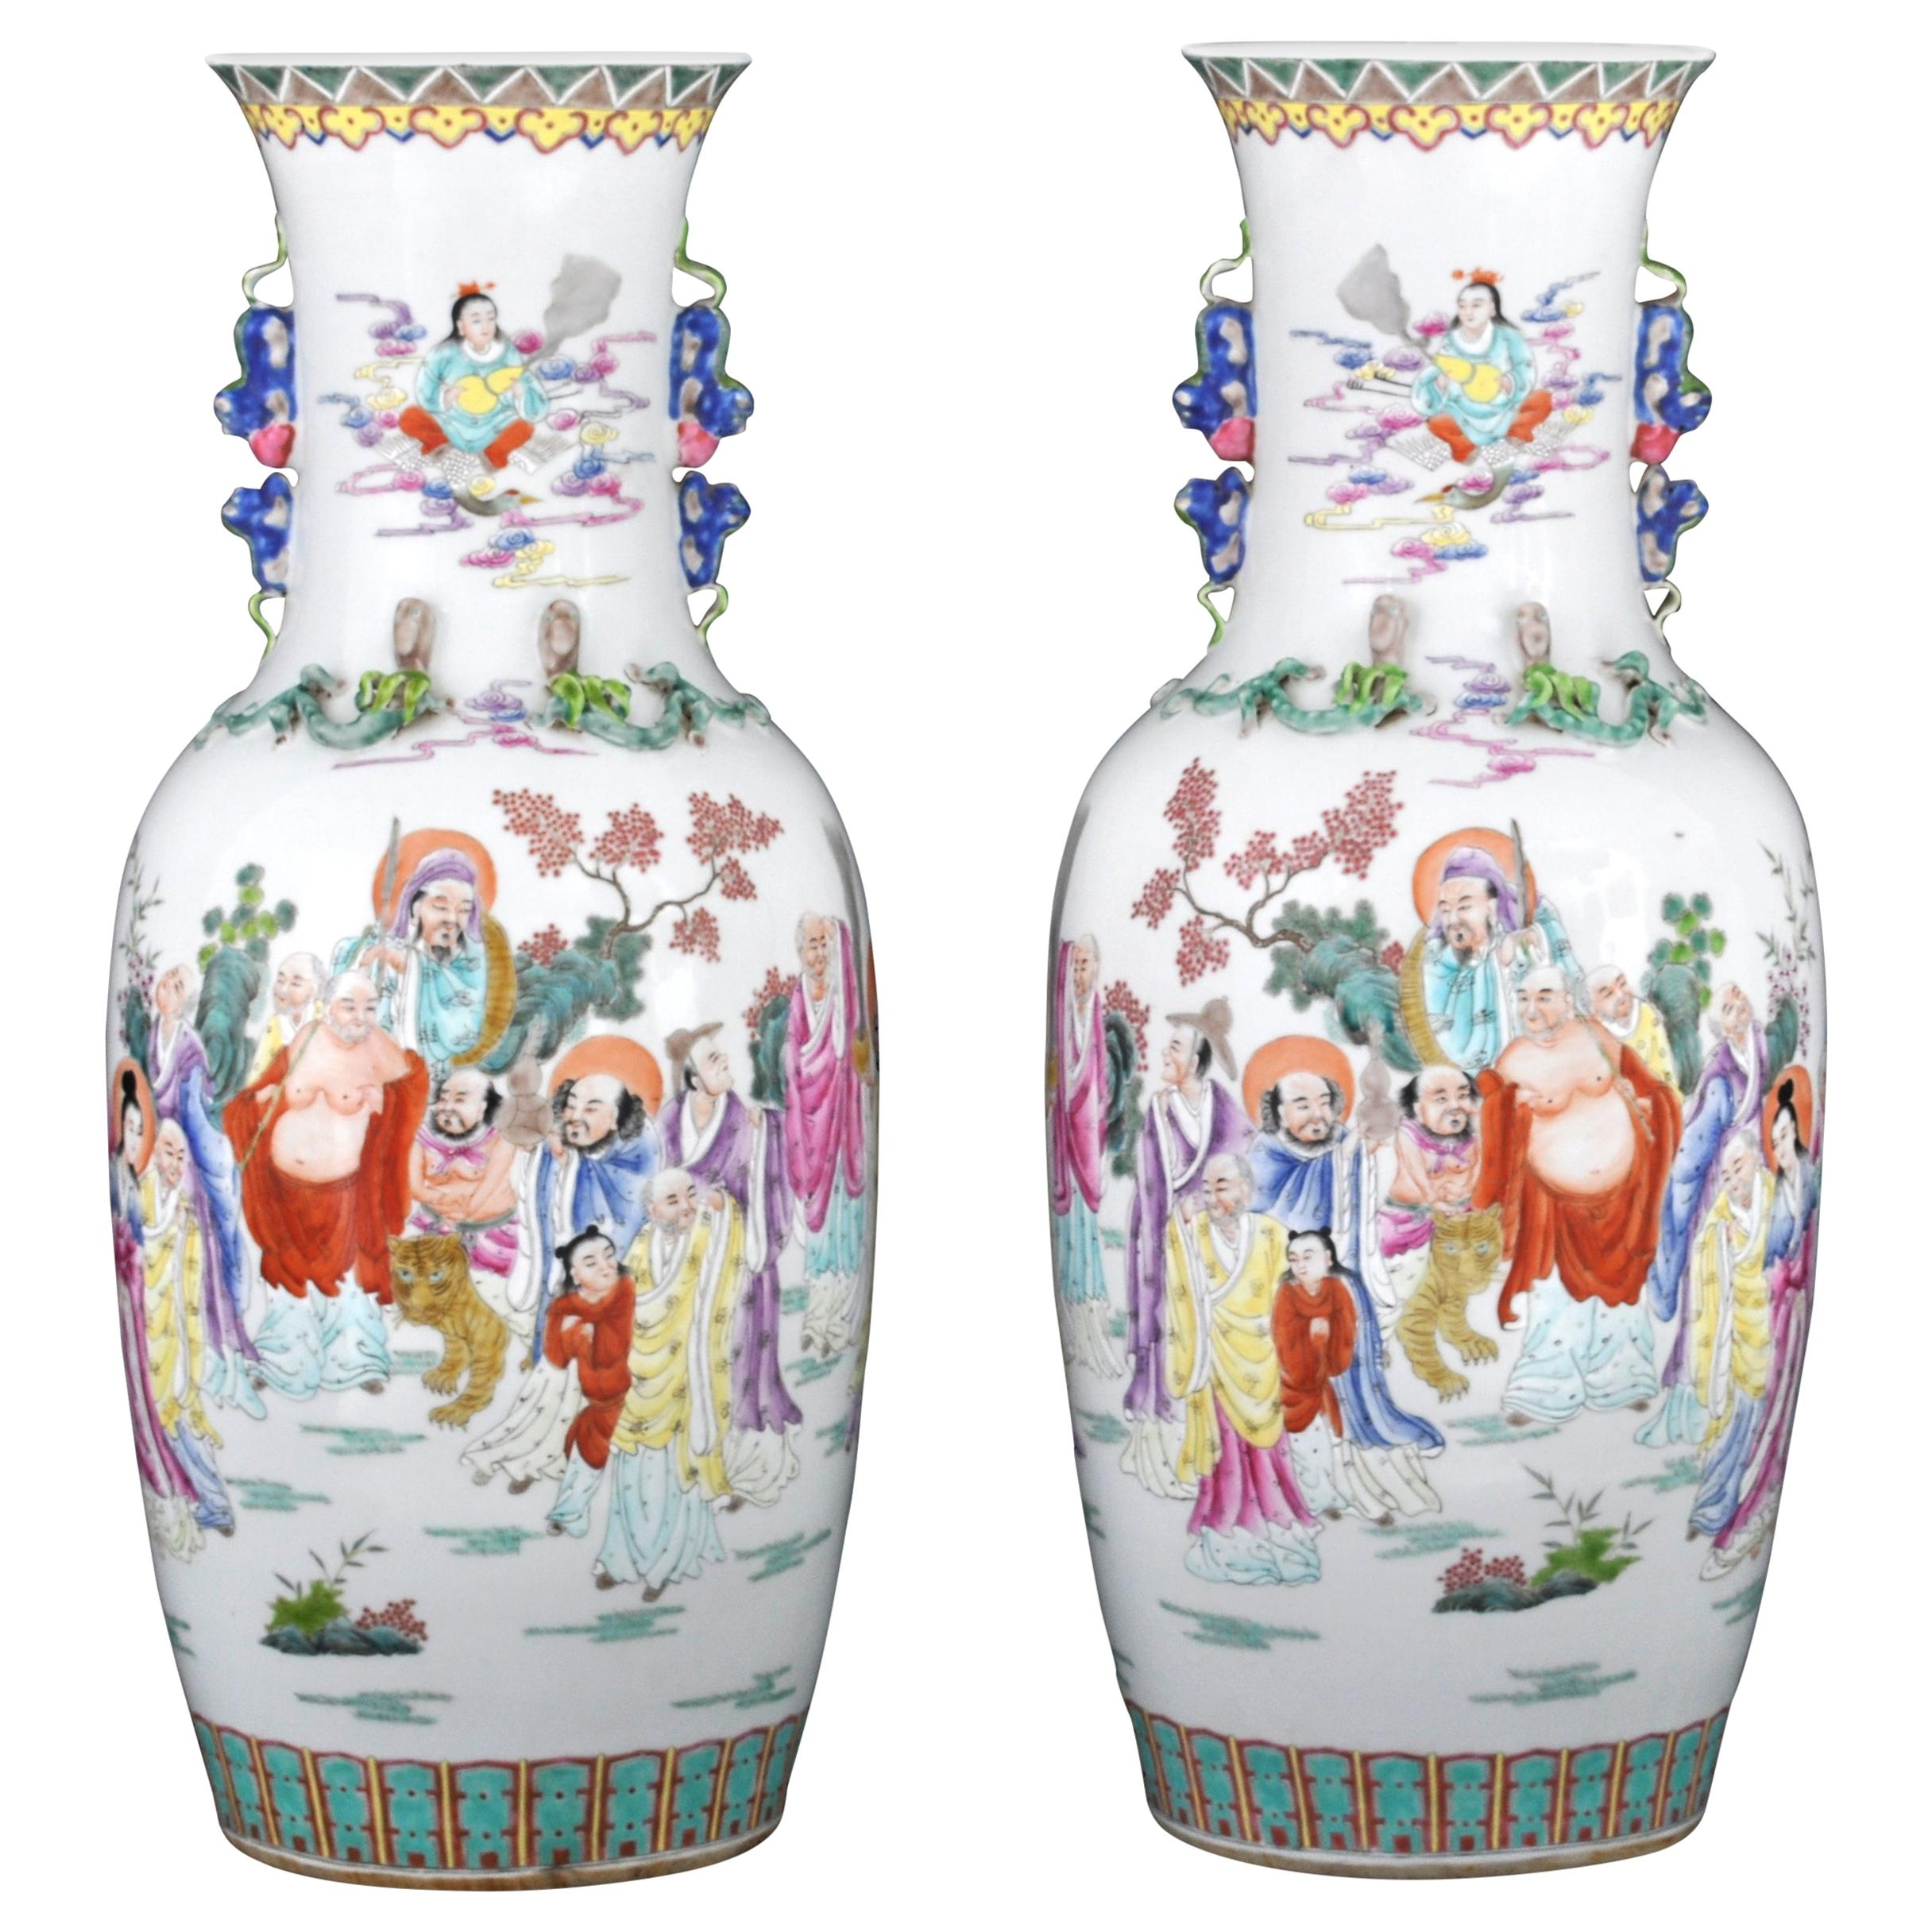 Monumental Pair of Antique Chinese Qing Dynasty Famille Rose Porcelain Vases